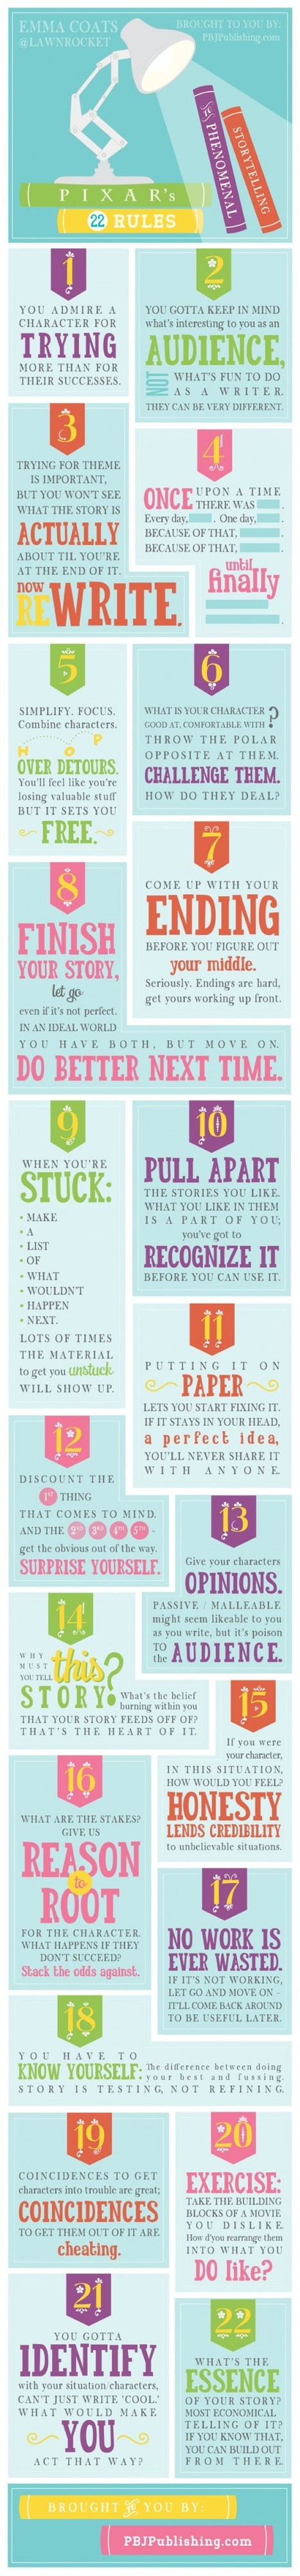 Pixar's 22 Rules to Phenomenal Storytelling [INFOGRAPHIC] | TransMedia Thinking | Scoop.it